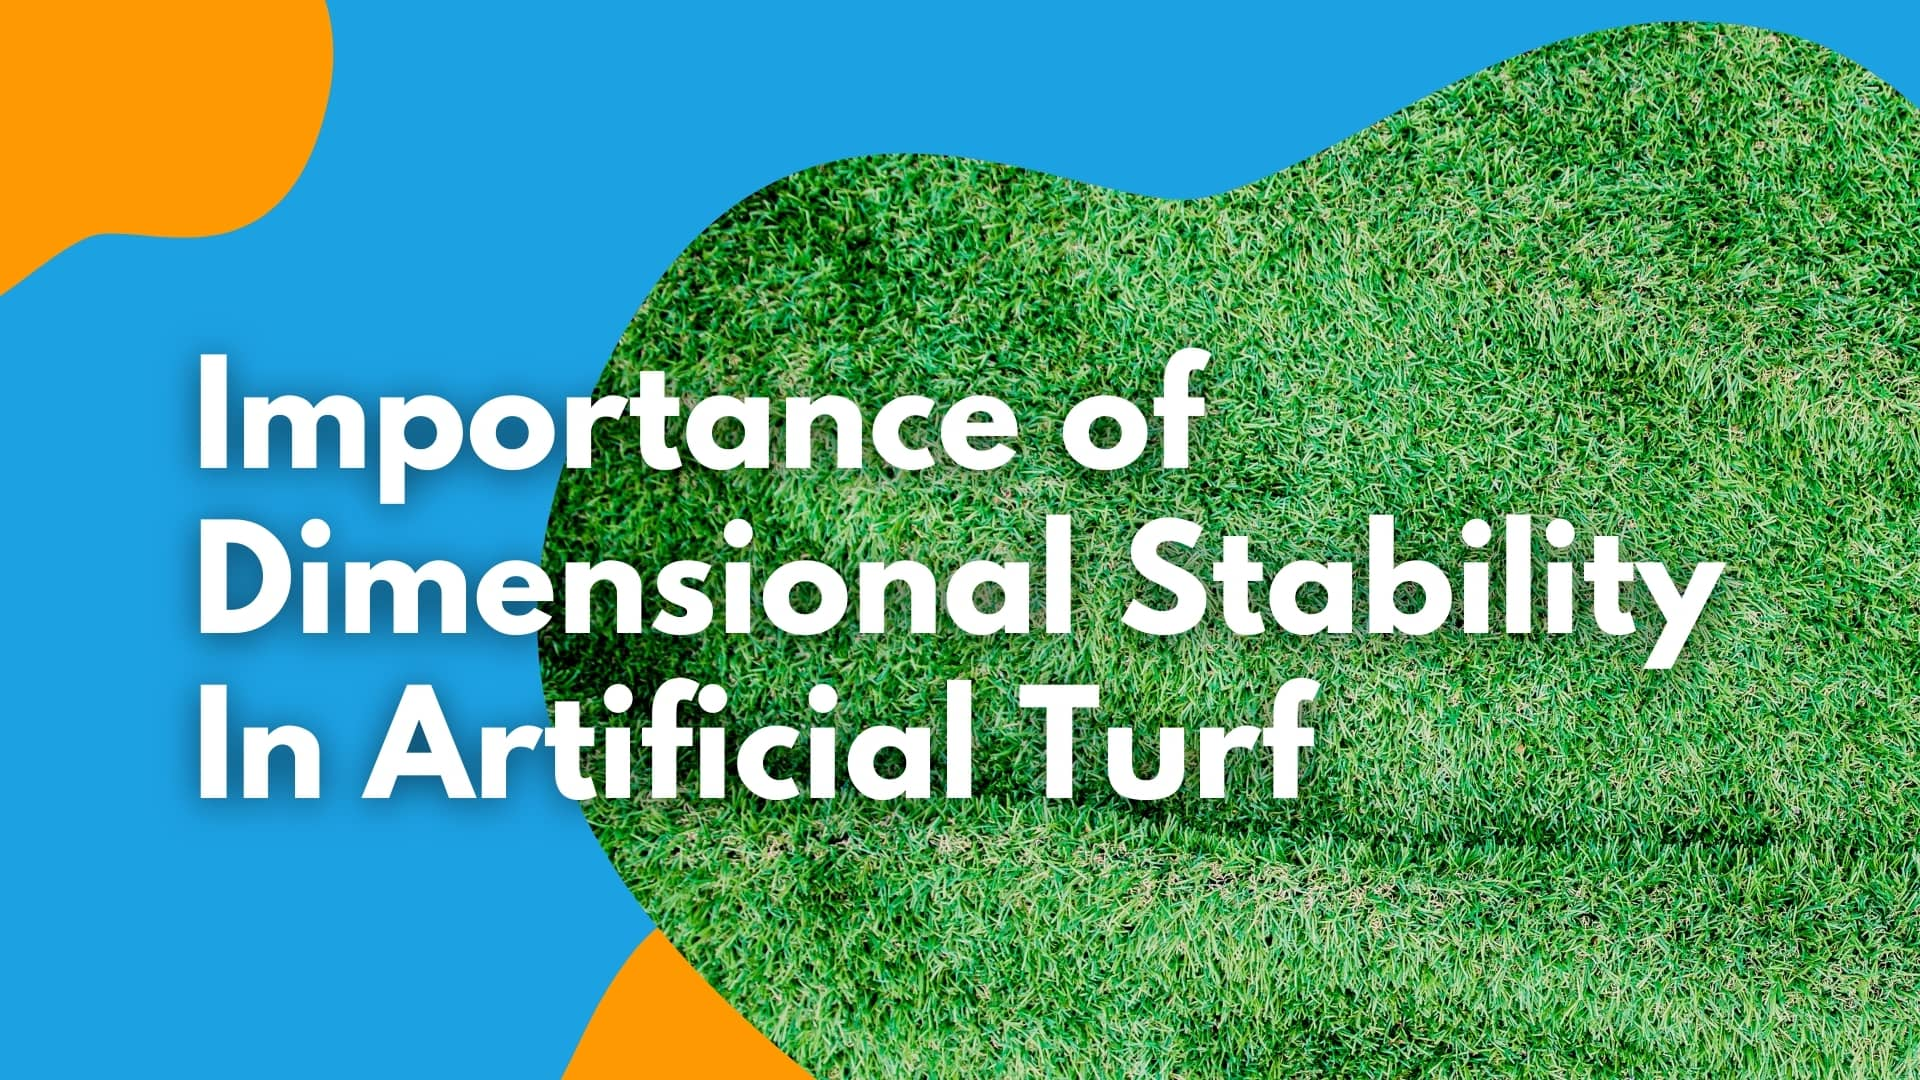 Importance of Dimensional Stability in Artificial Turf